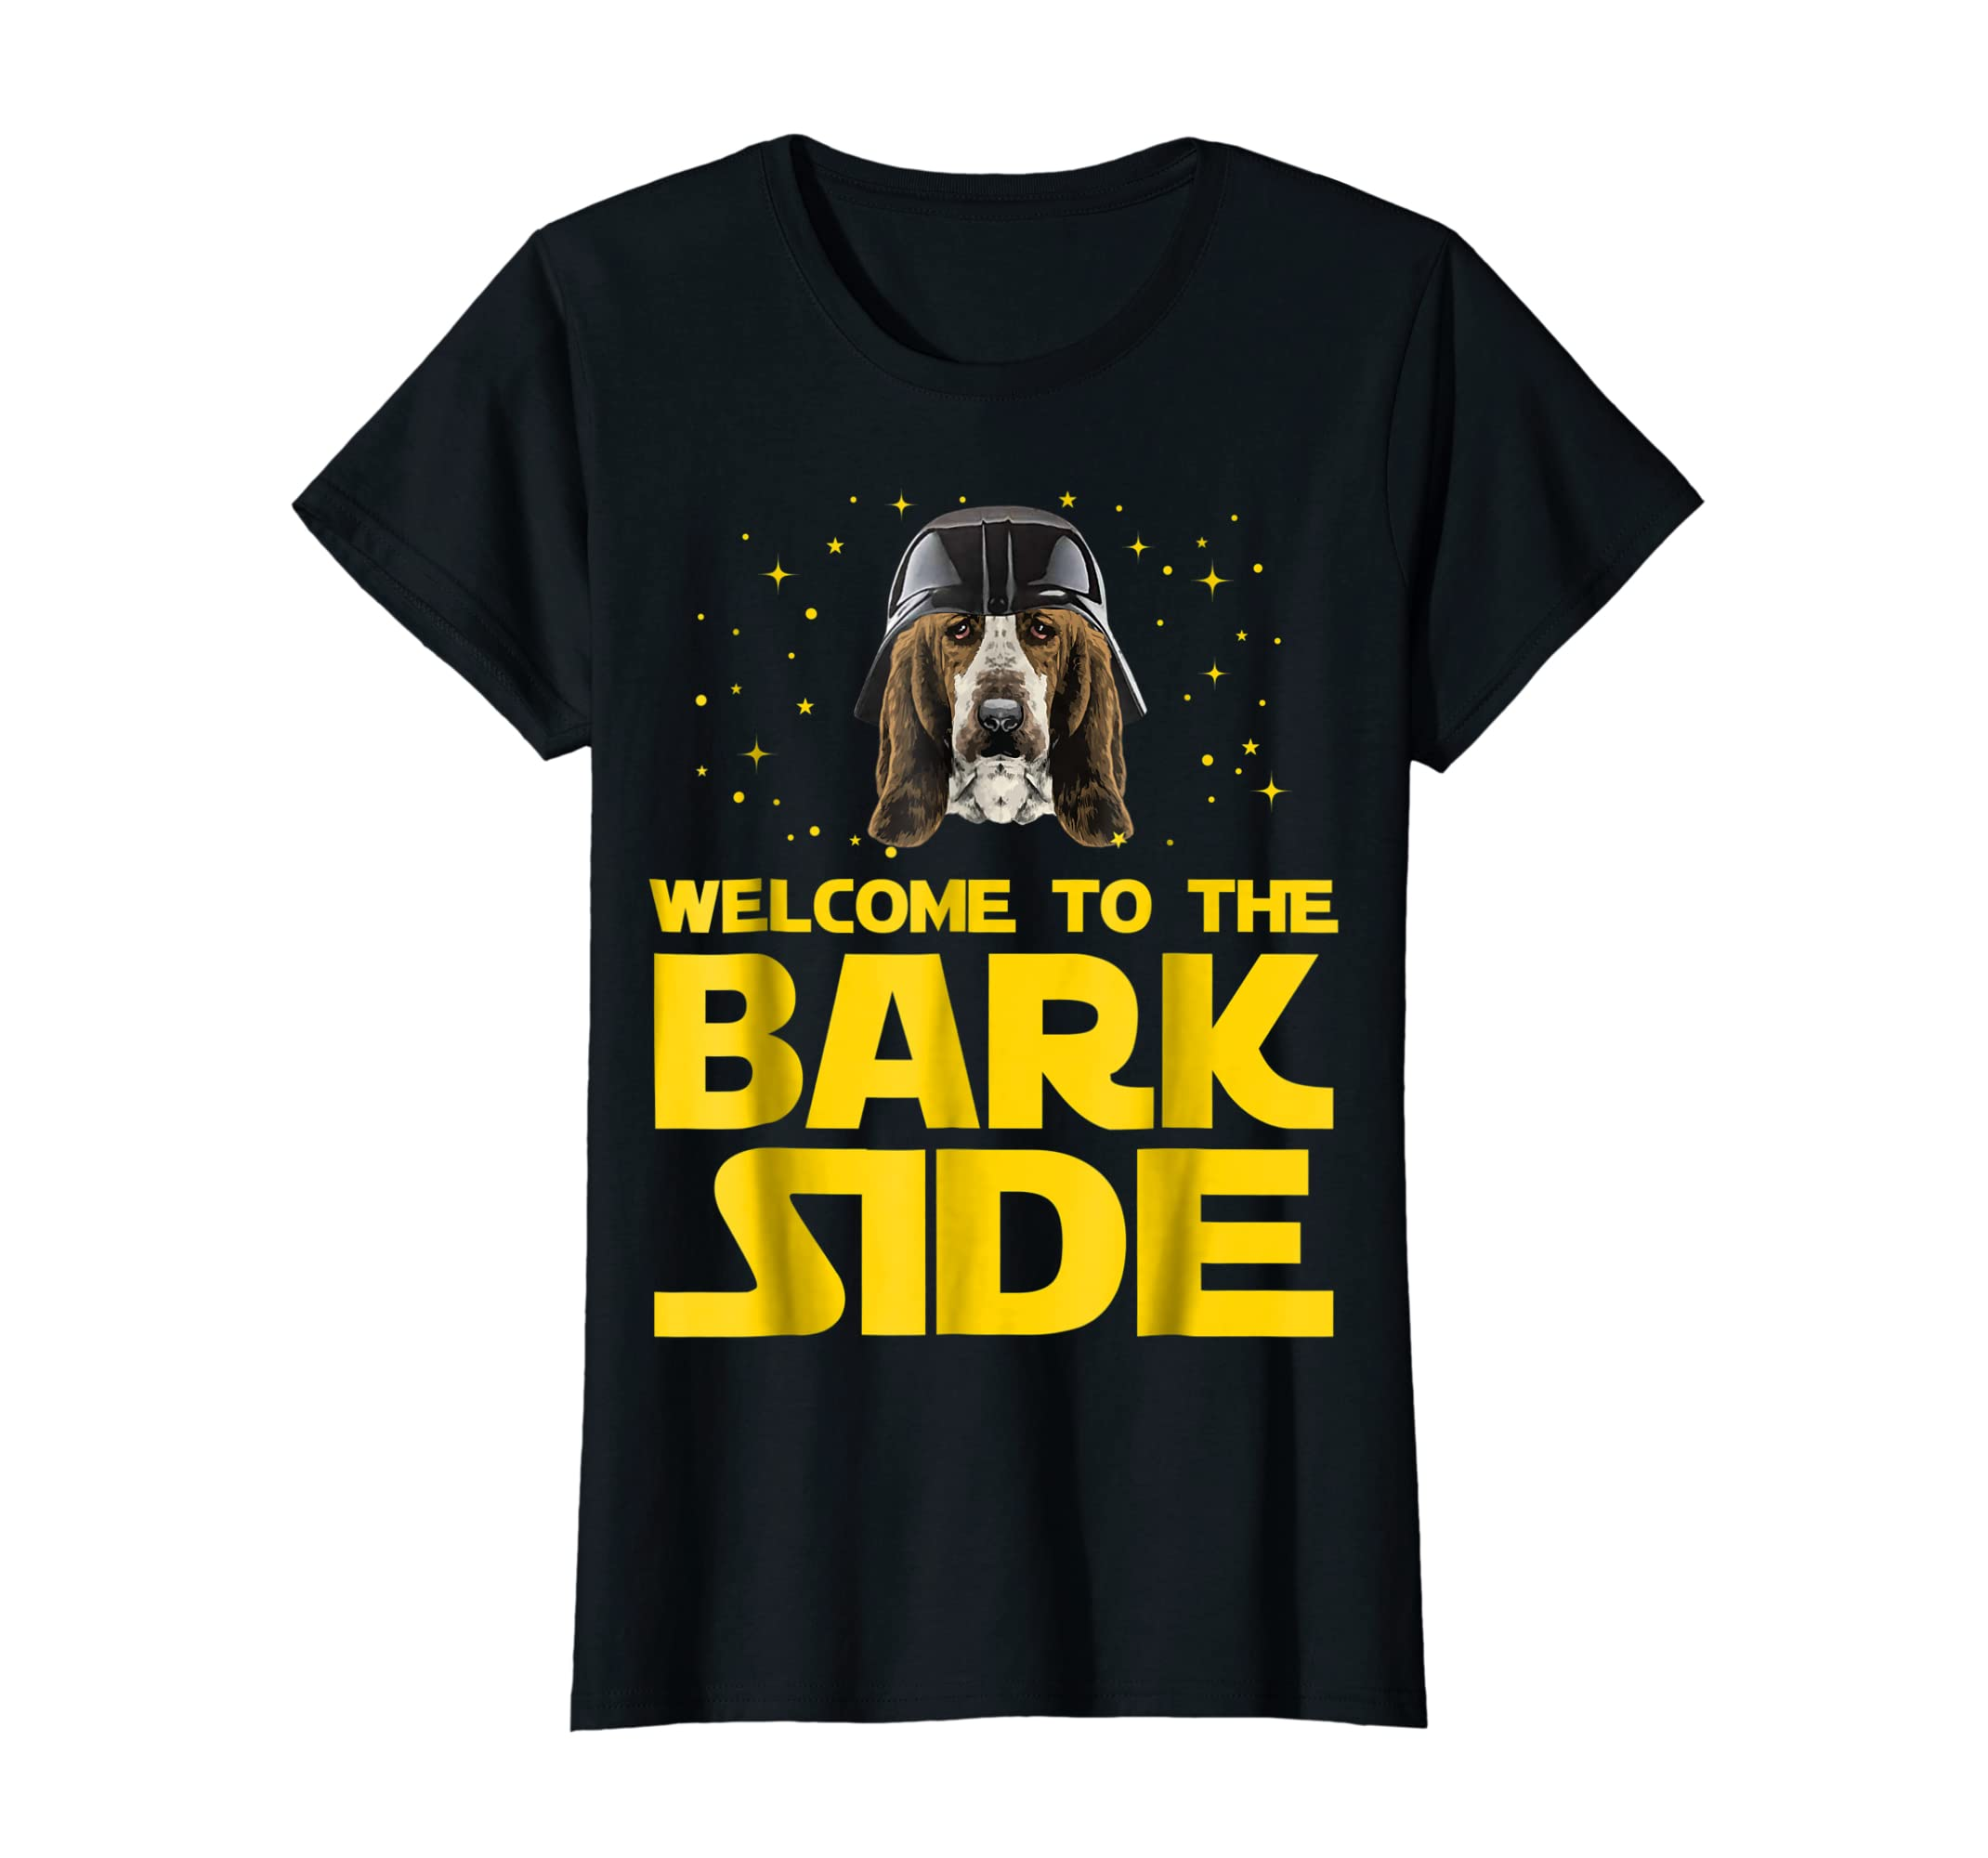 Welcome to the Bark Side of Basset Hound Funny T shirt Gifts-Women's T-Shirt-Black